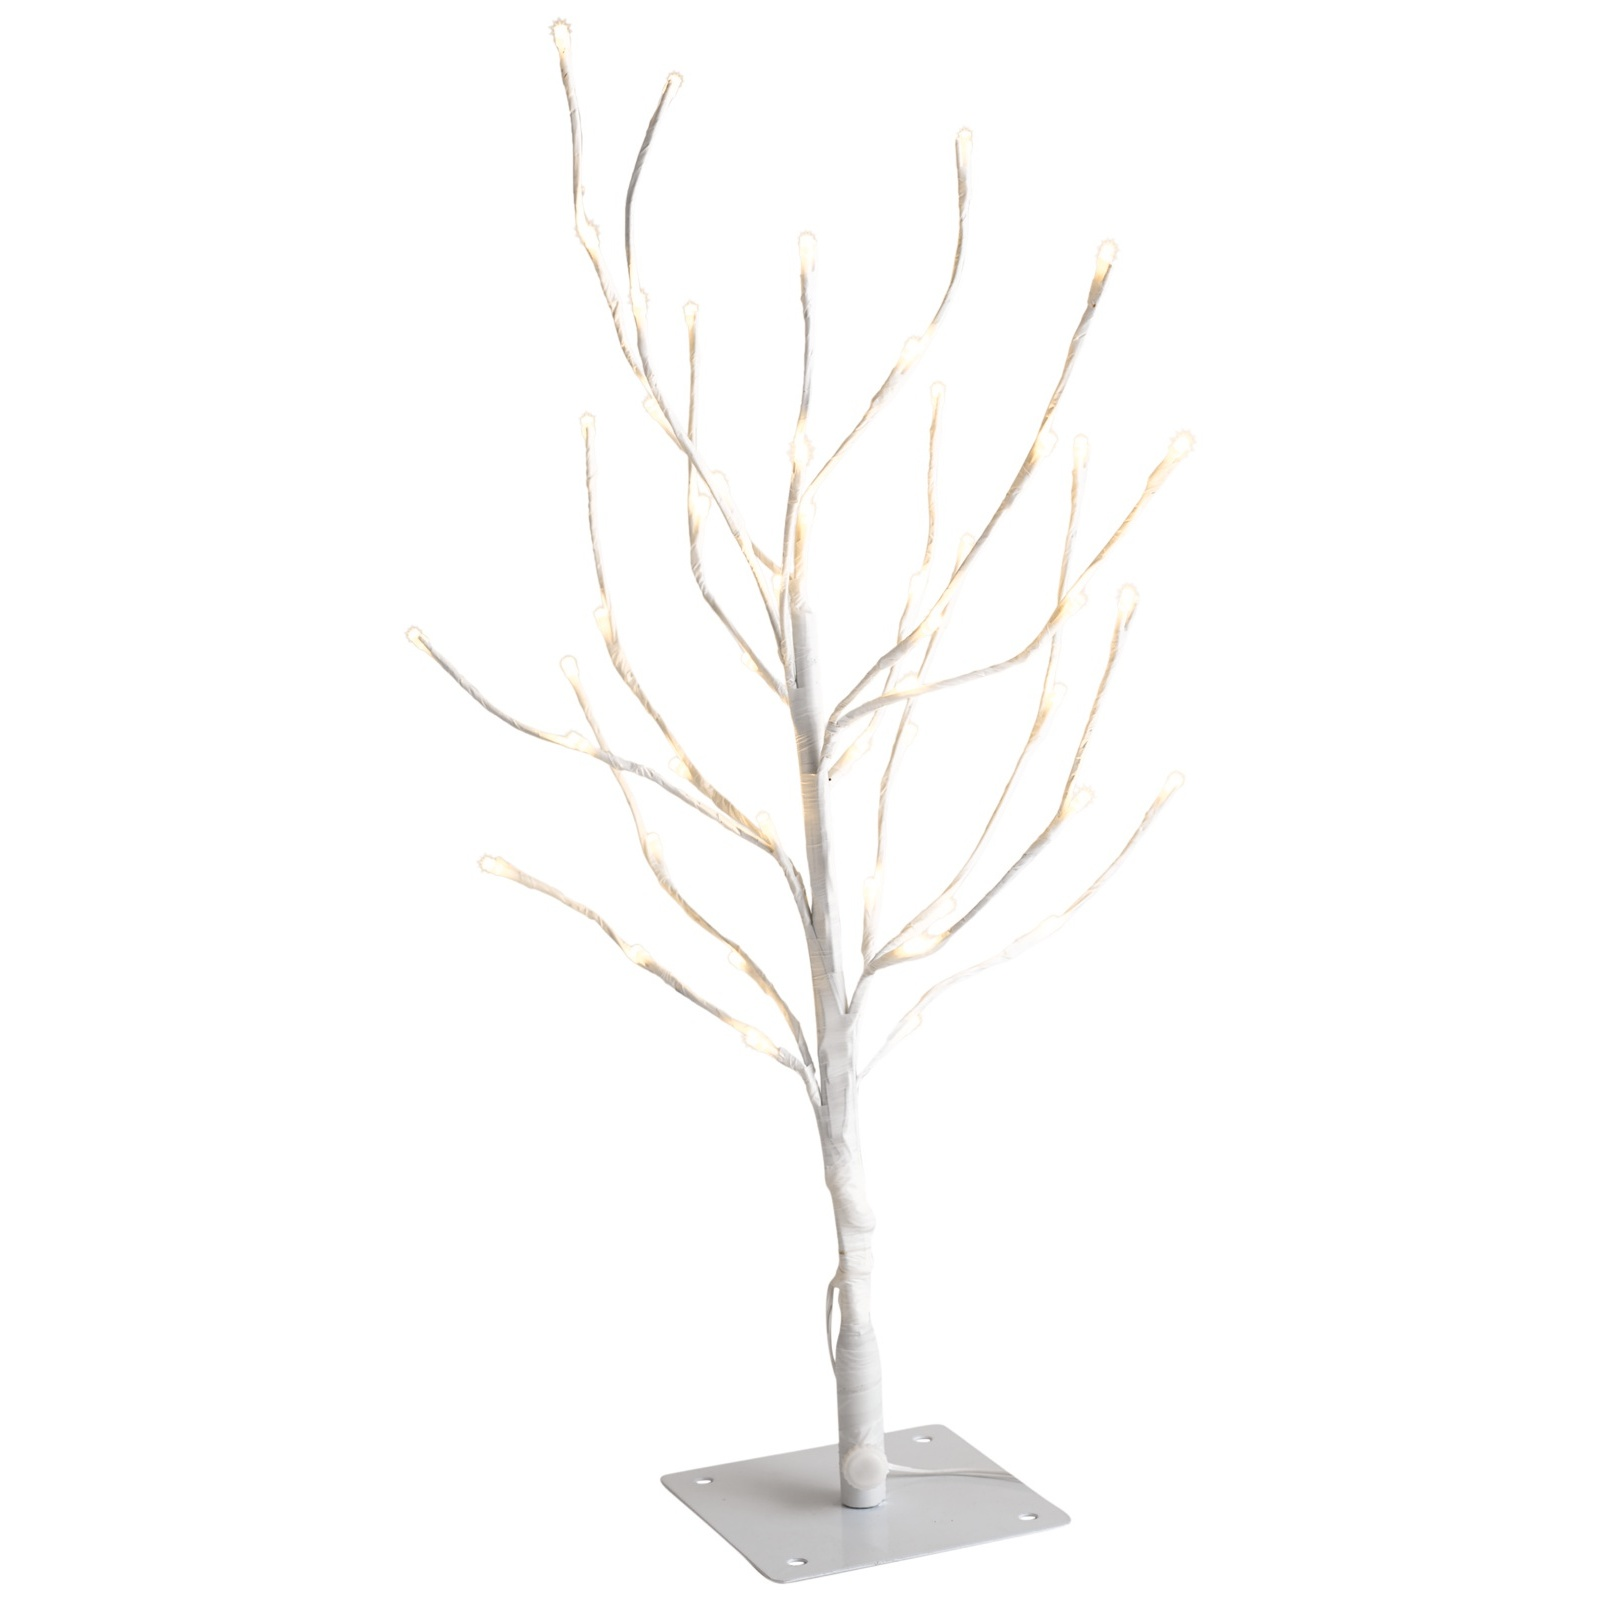 on sale 9f0ca 0b62a Details about White Twig Tree Branch Warm White LED Lights Christmas Tree  Decoration 55cm